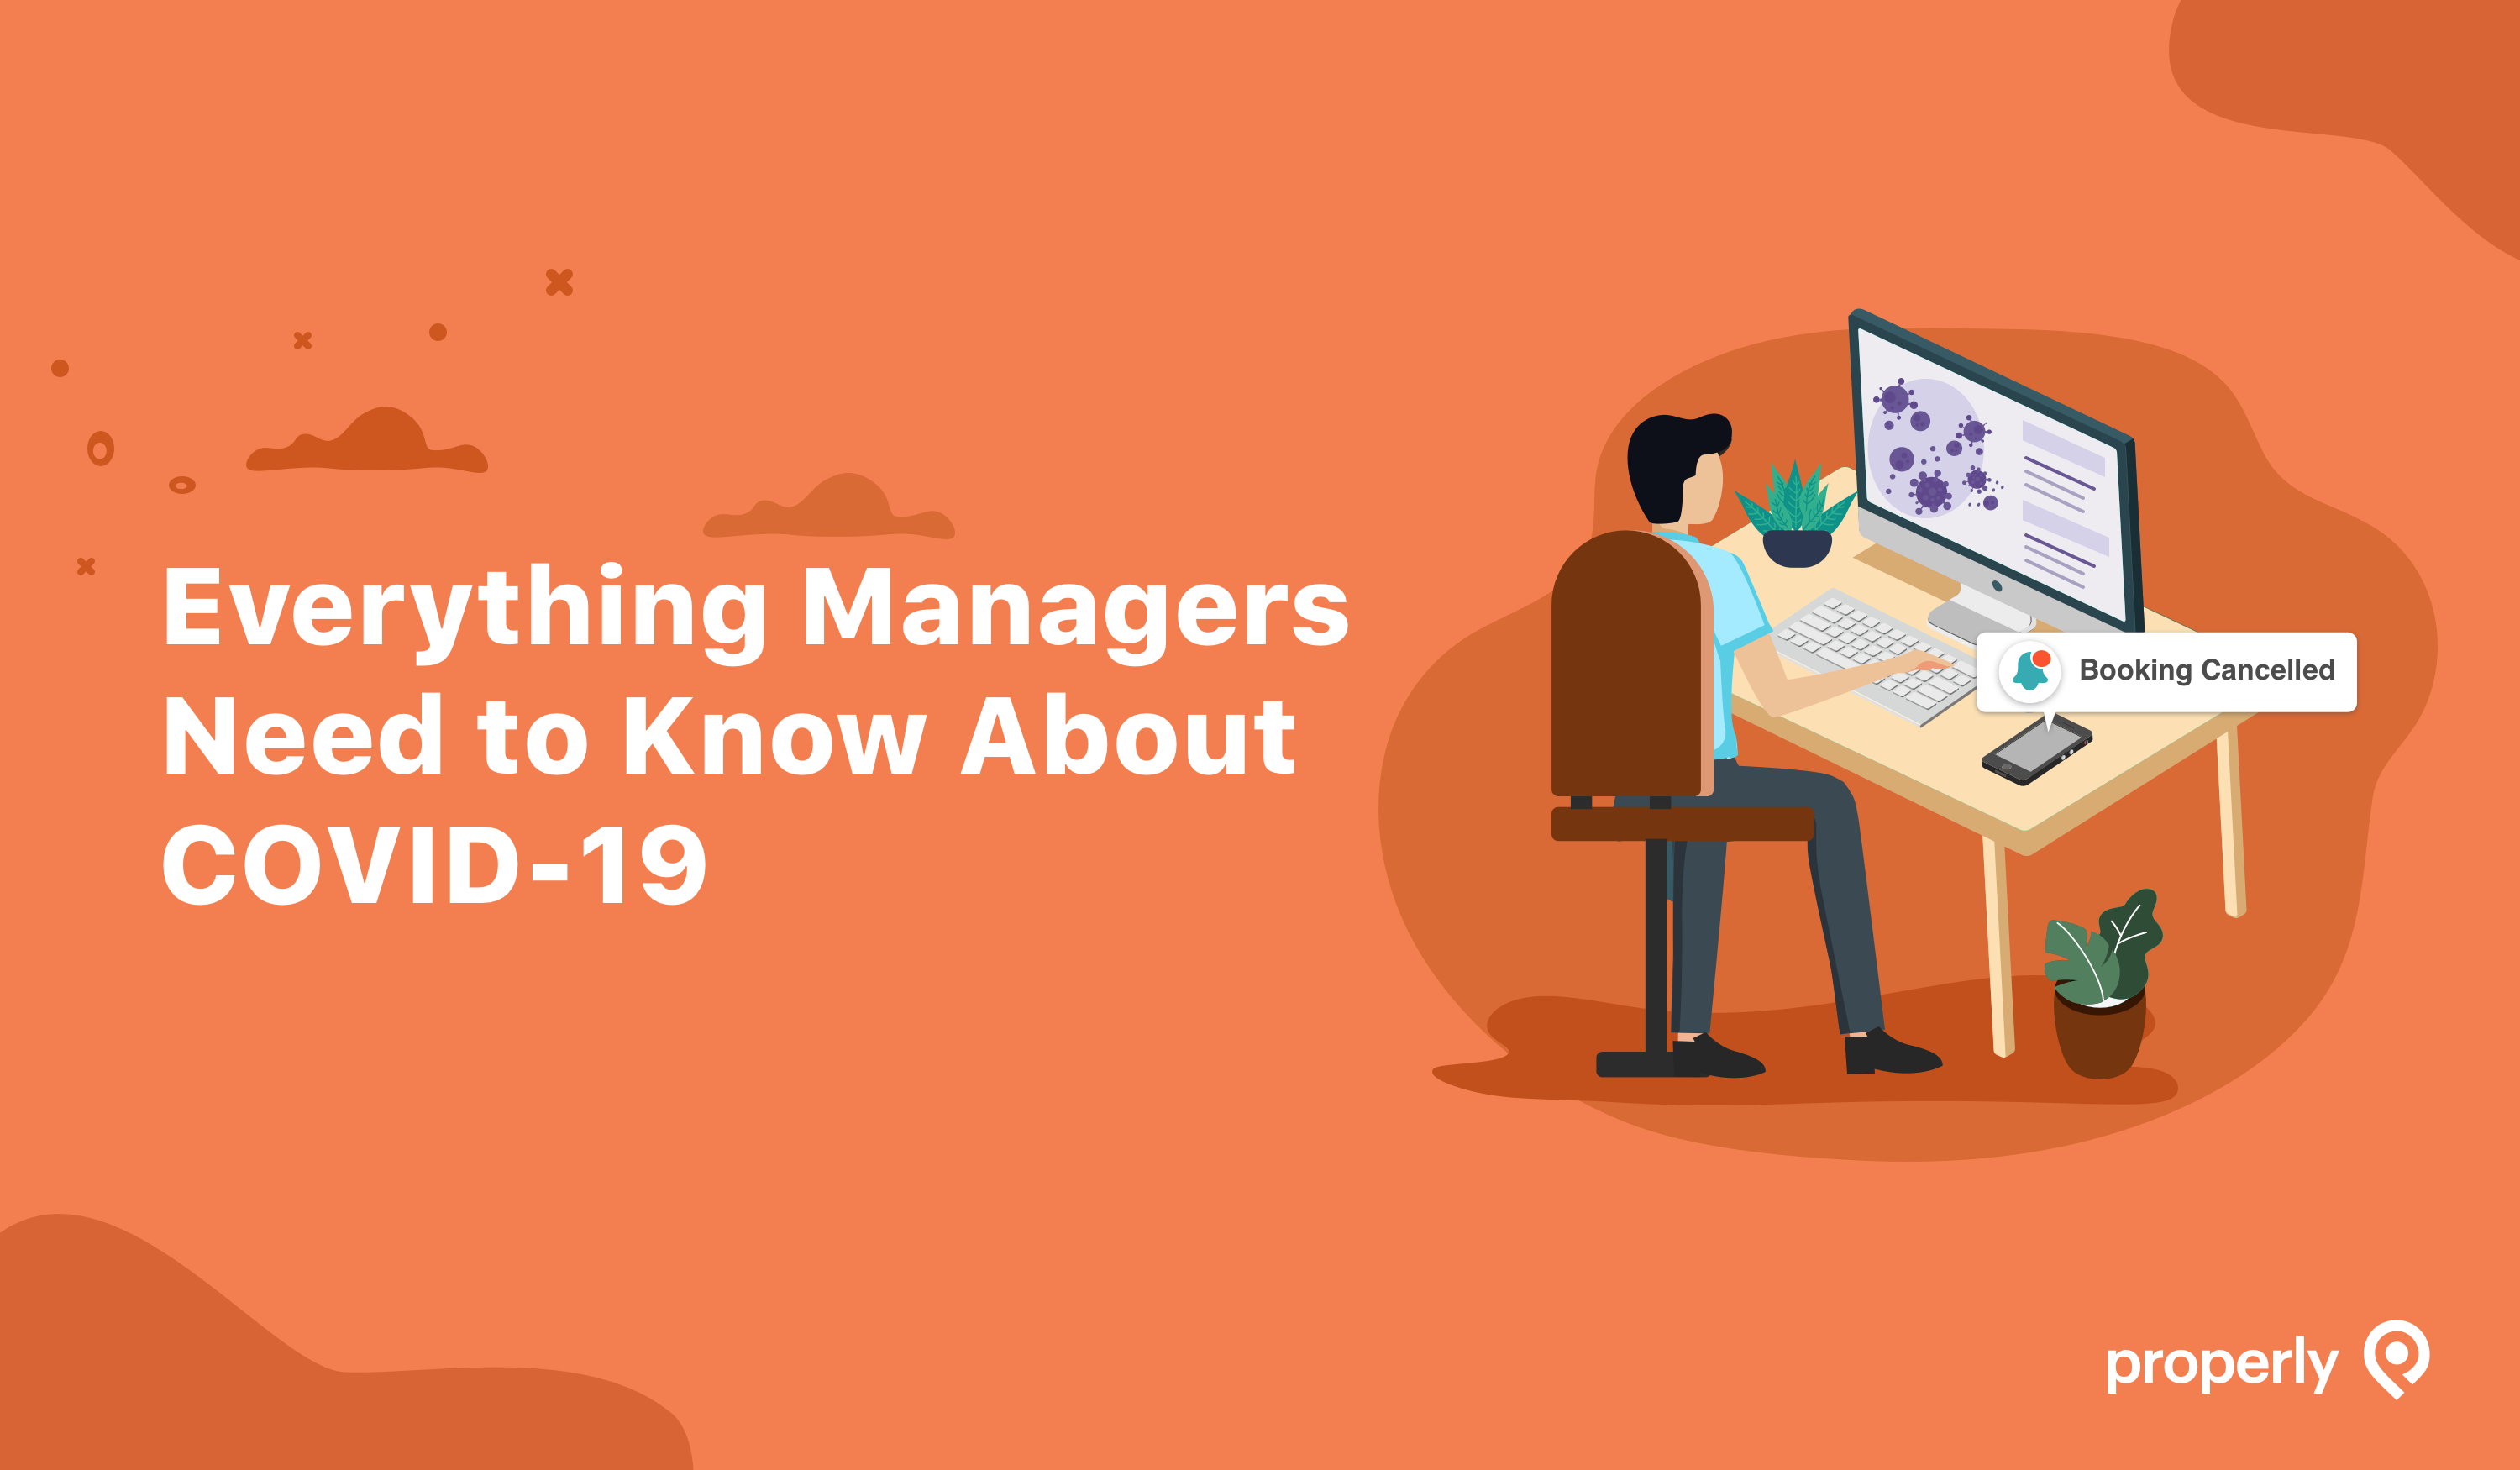 Everything-Managers-Need-to-Know-About-COVID-19